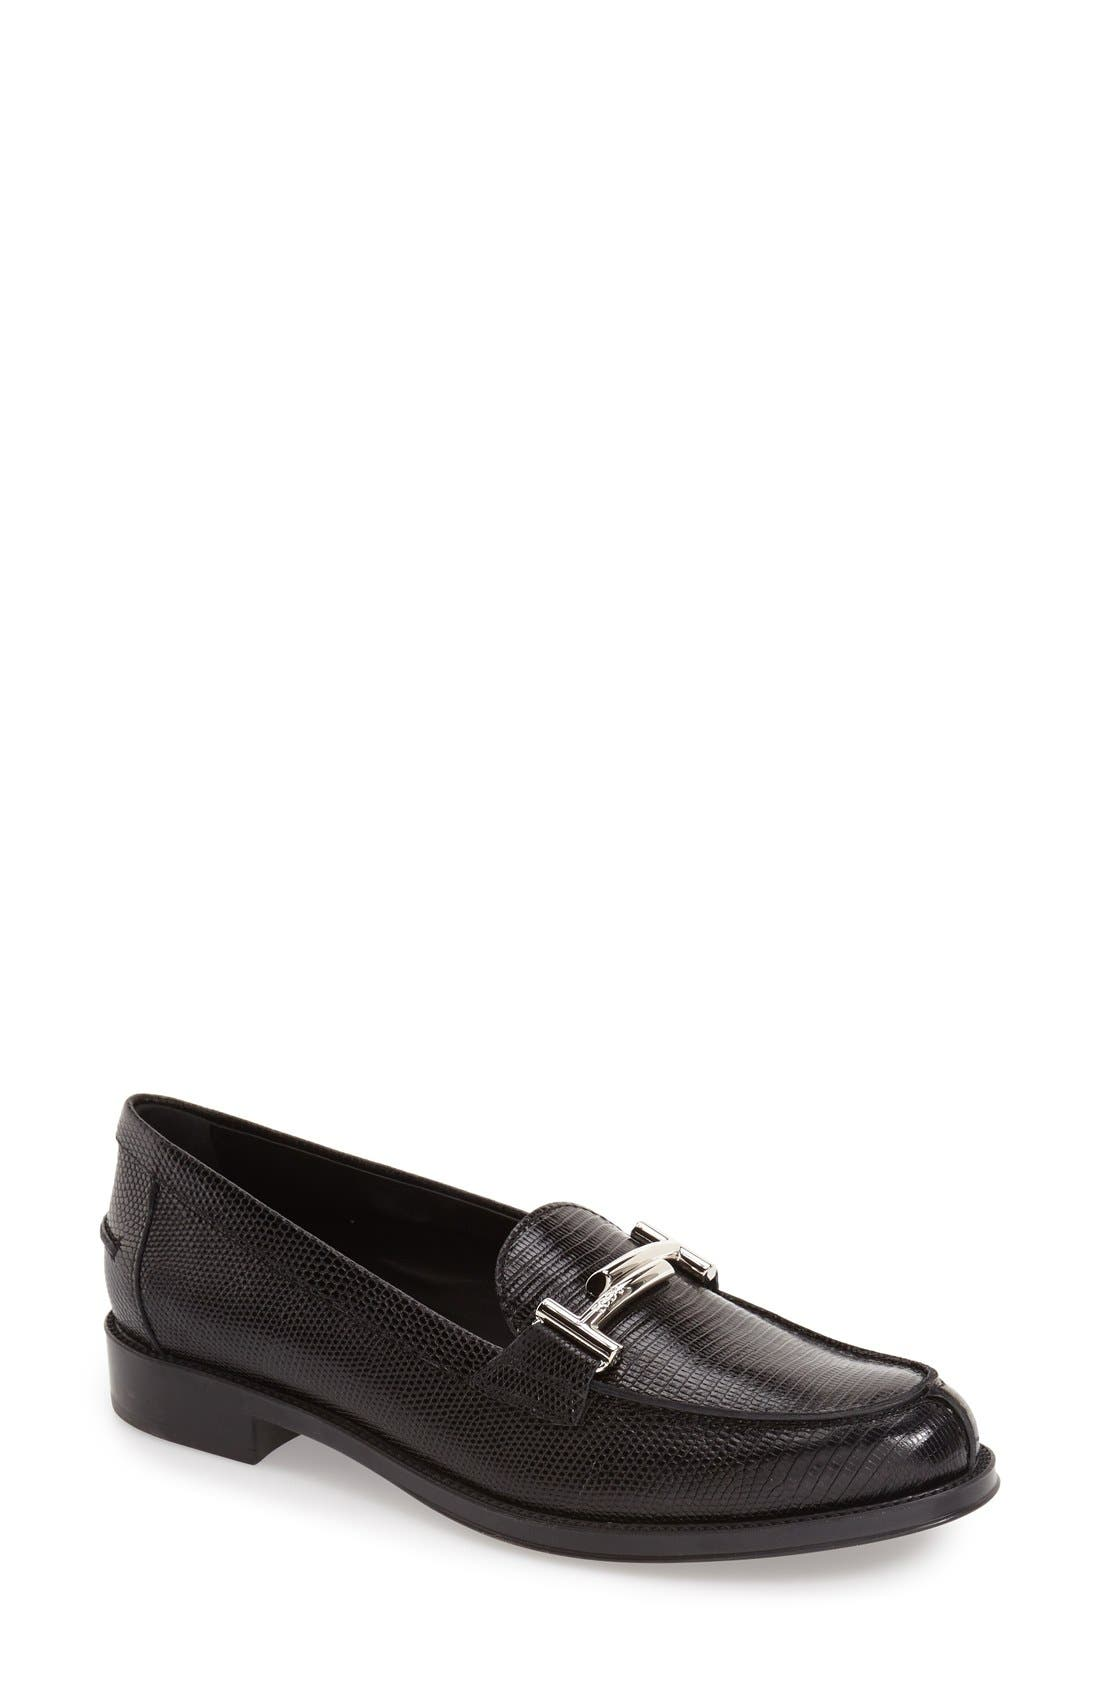 'Double T' Loafer,                         Main,                         color, Black